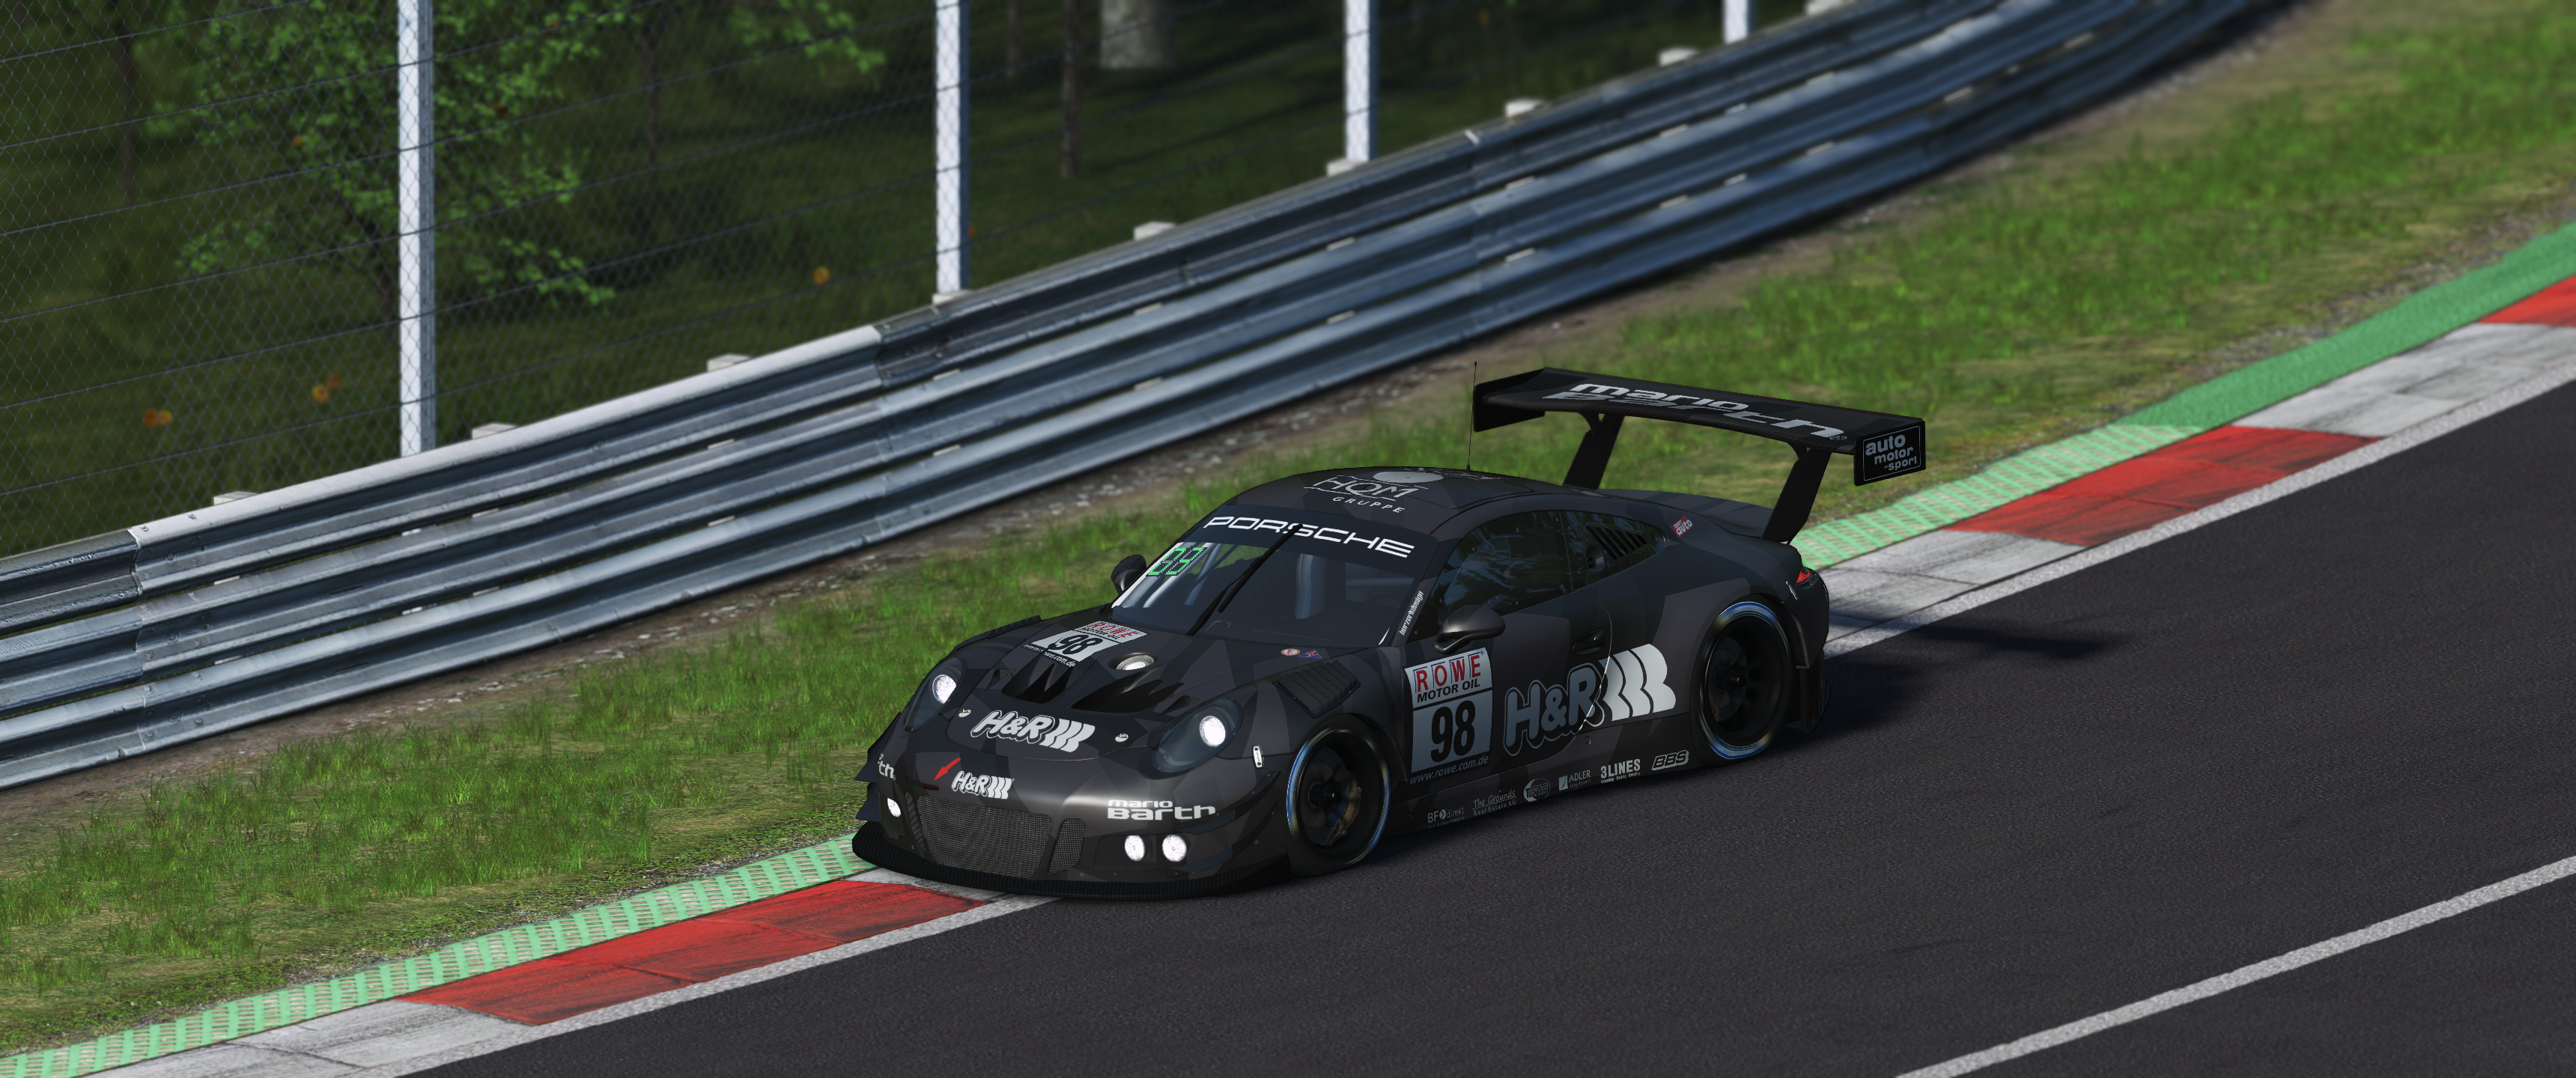 rFactor2 2019-02-11 02-15-21-95.png